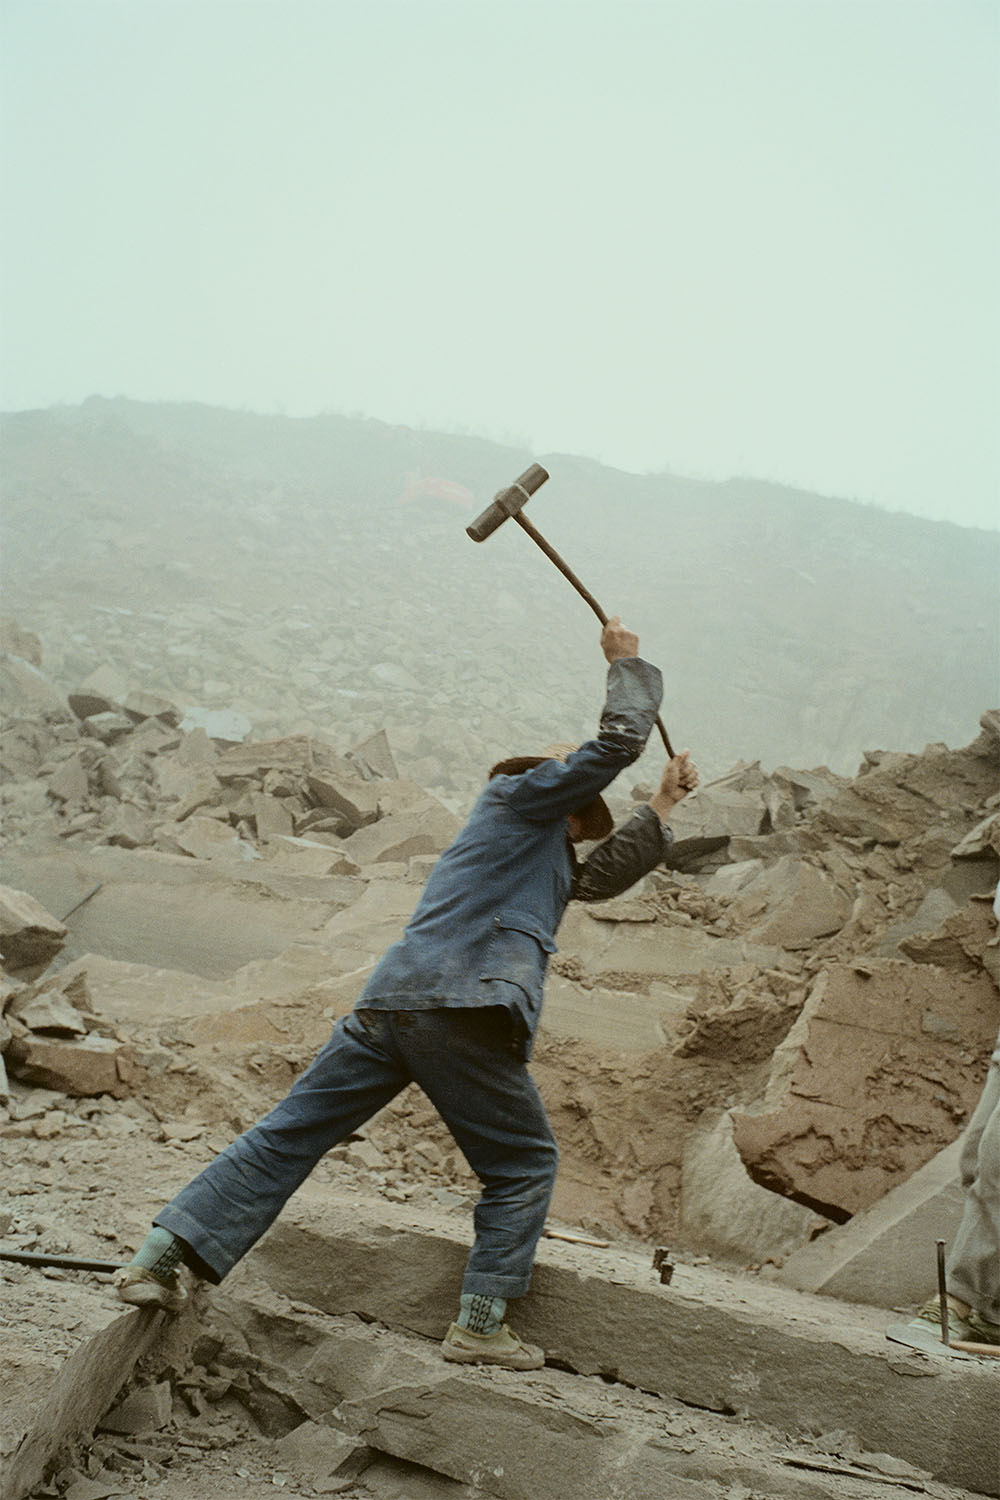 Migrant worker at a construction site in the new town. The town is built higher up the mountains and will replace the old town that will eventually be submerged upon the completion of the Three Gorges Dam. Yunyang, China. 2000.